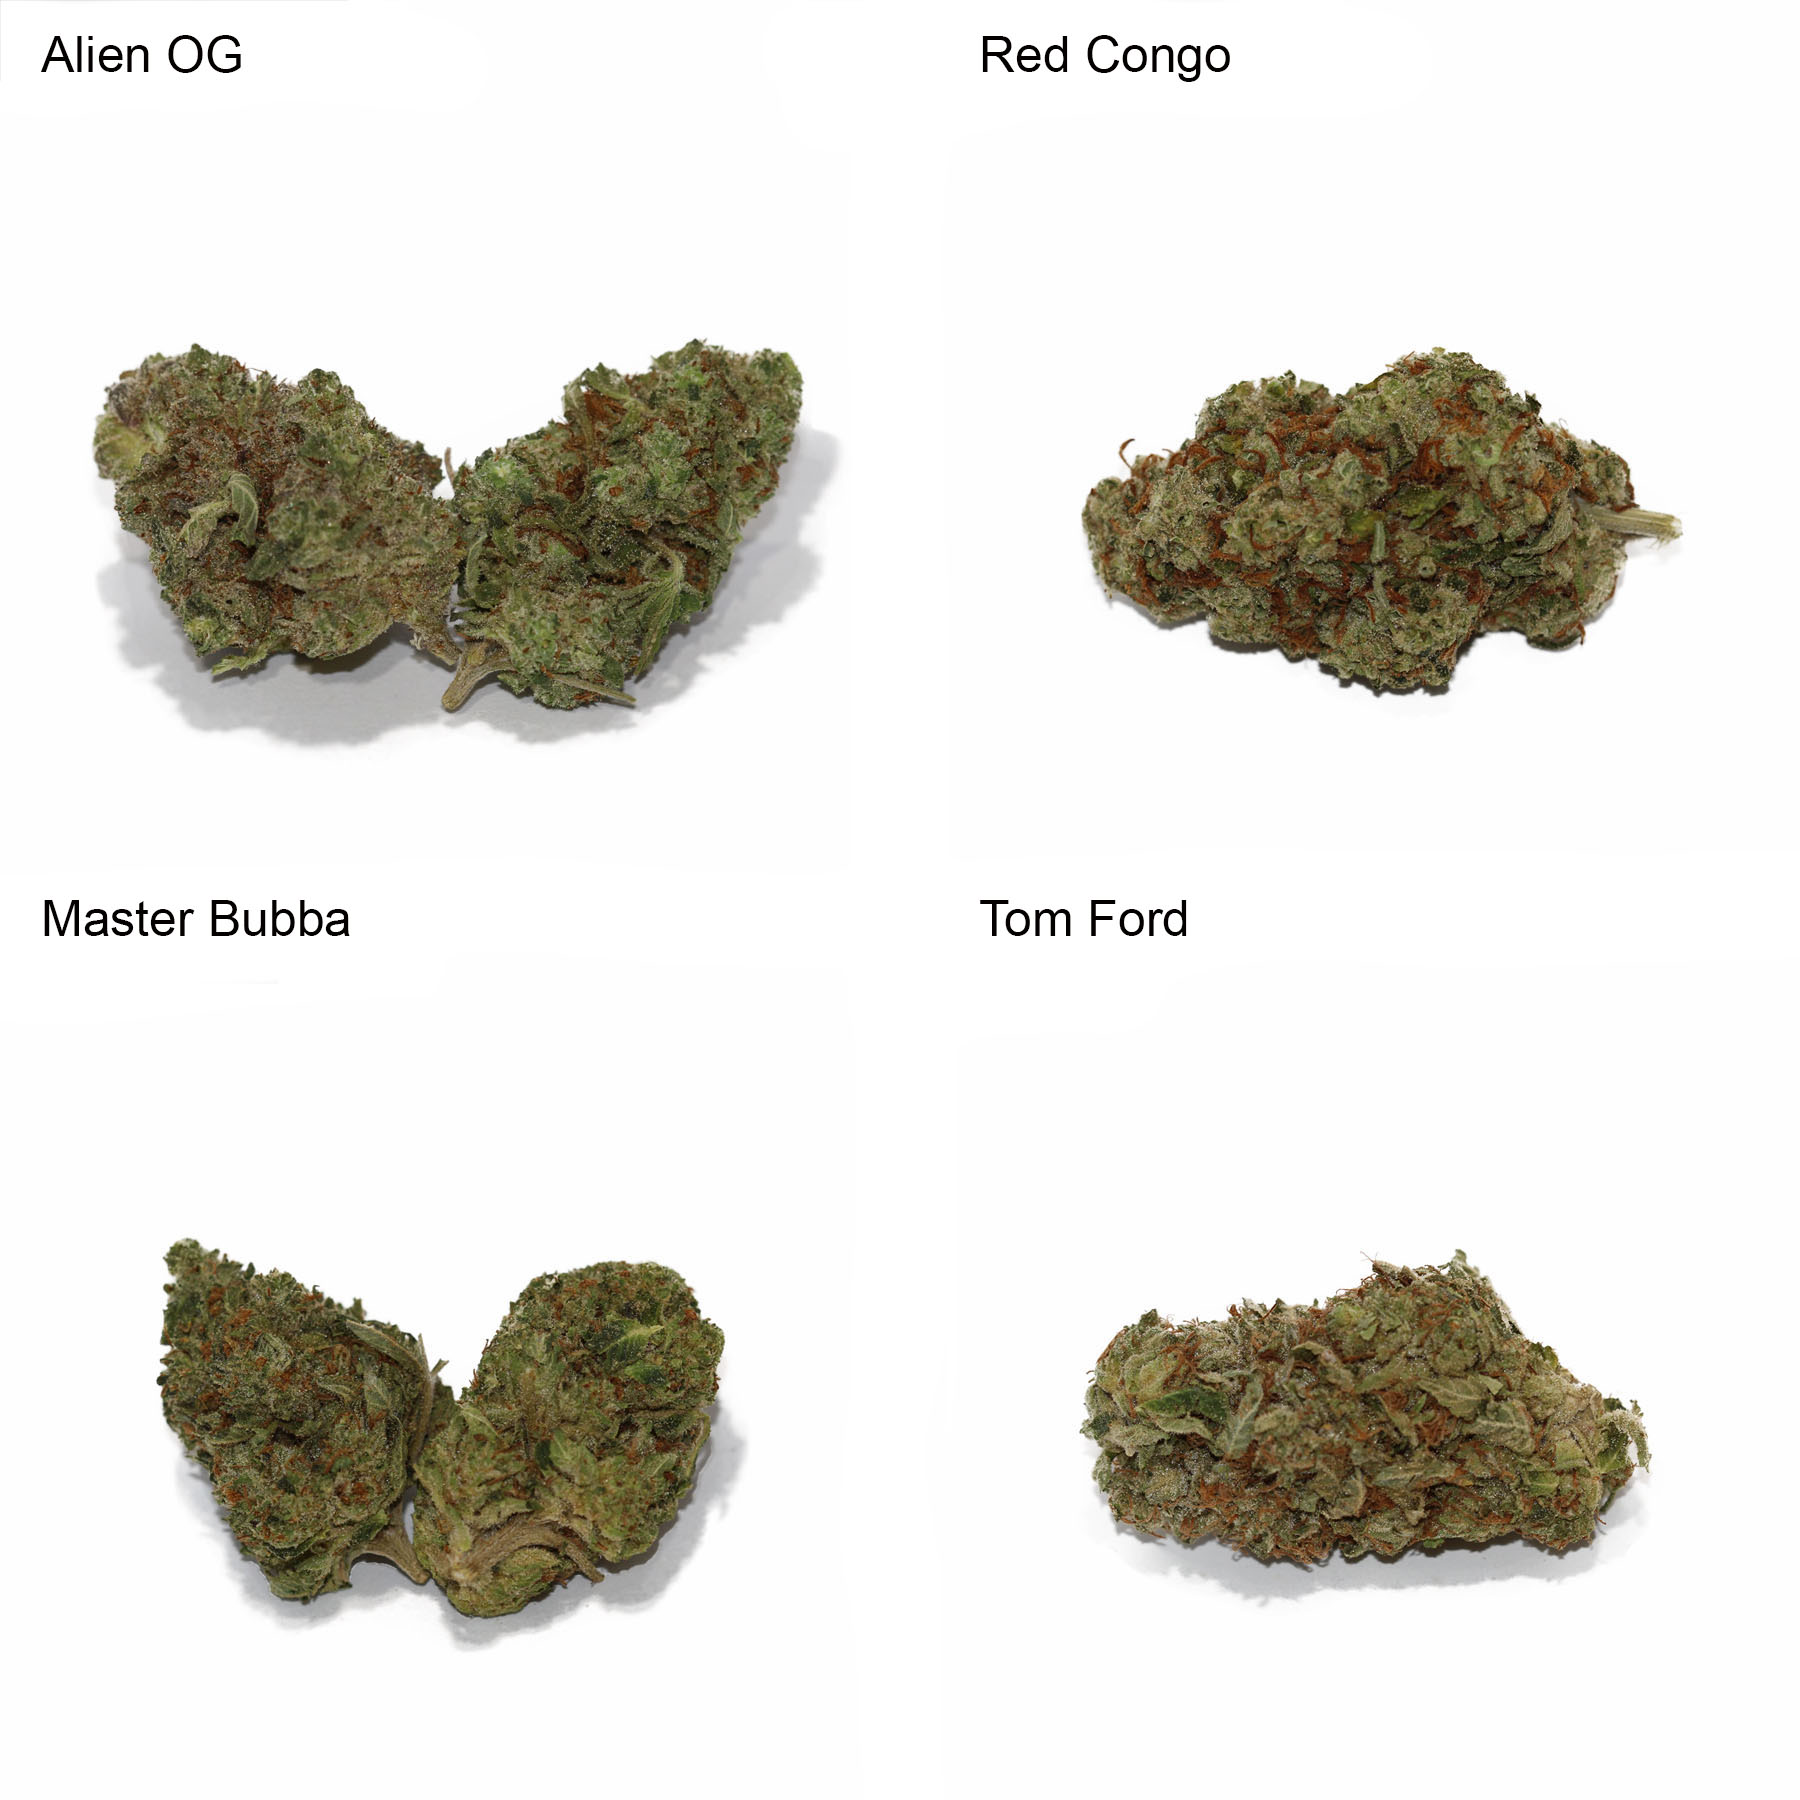 Top Shelf Variety Pack by Get Kush - Image © 2018 Get Kush. All Rights Reserved.